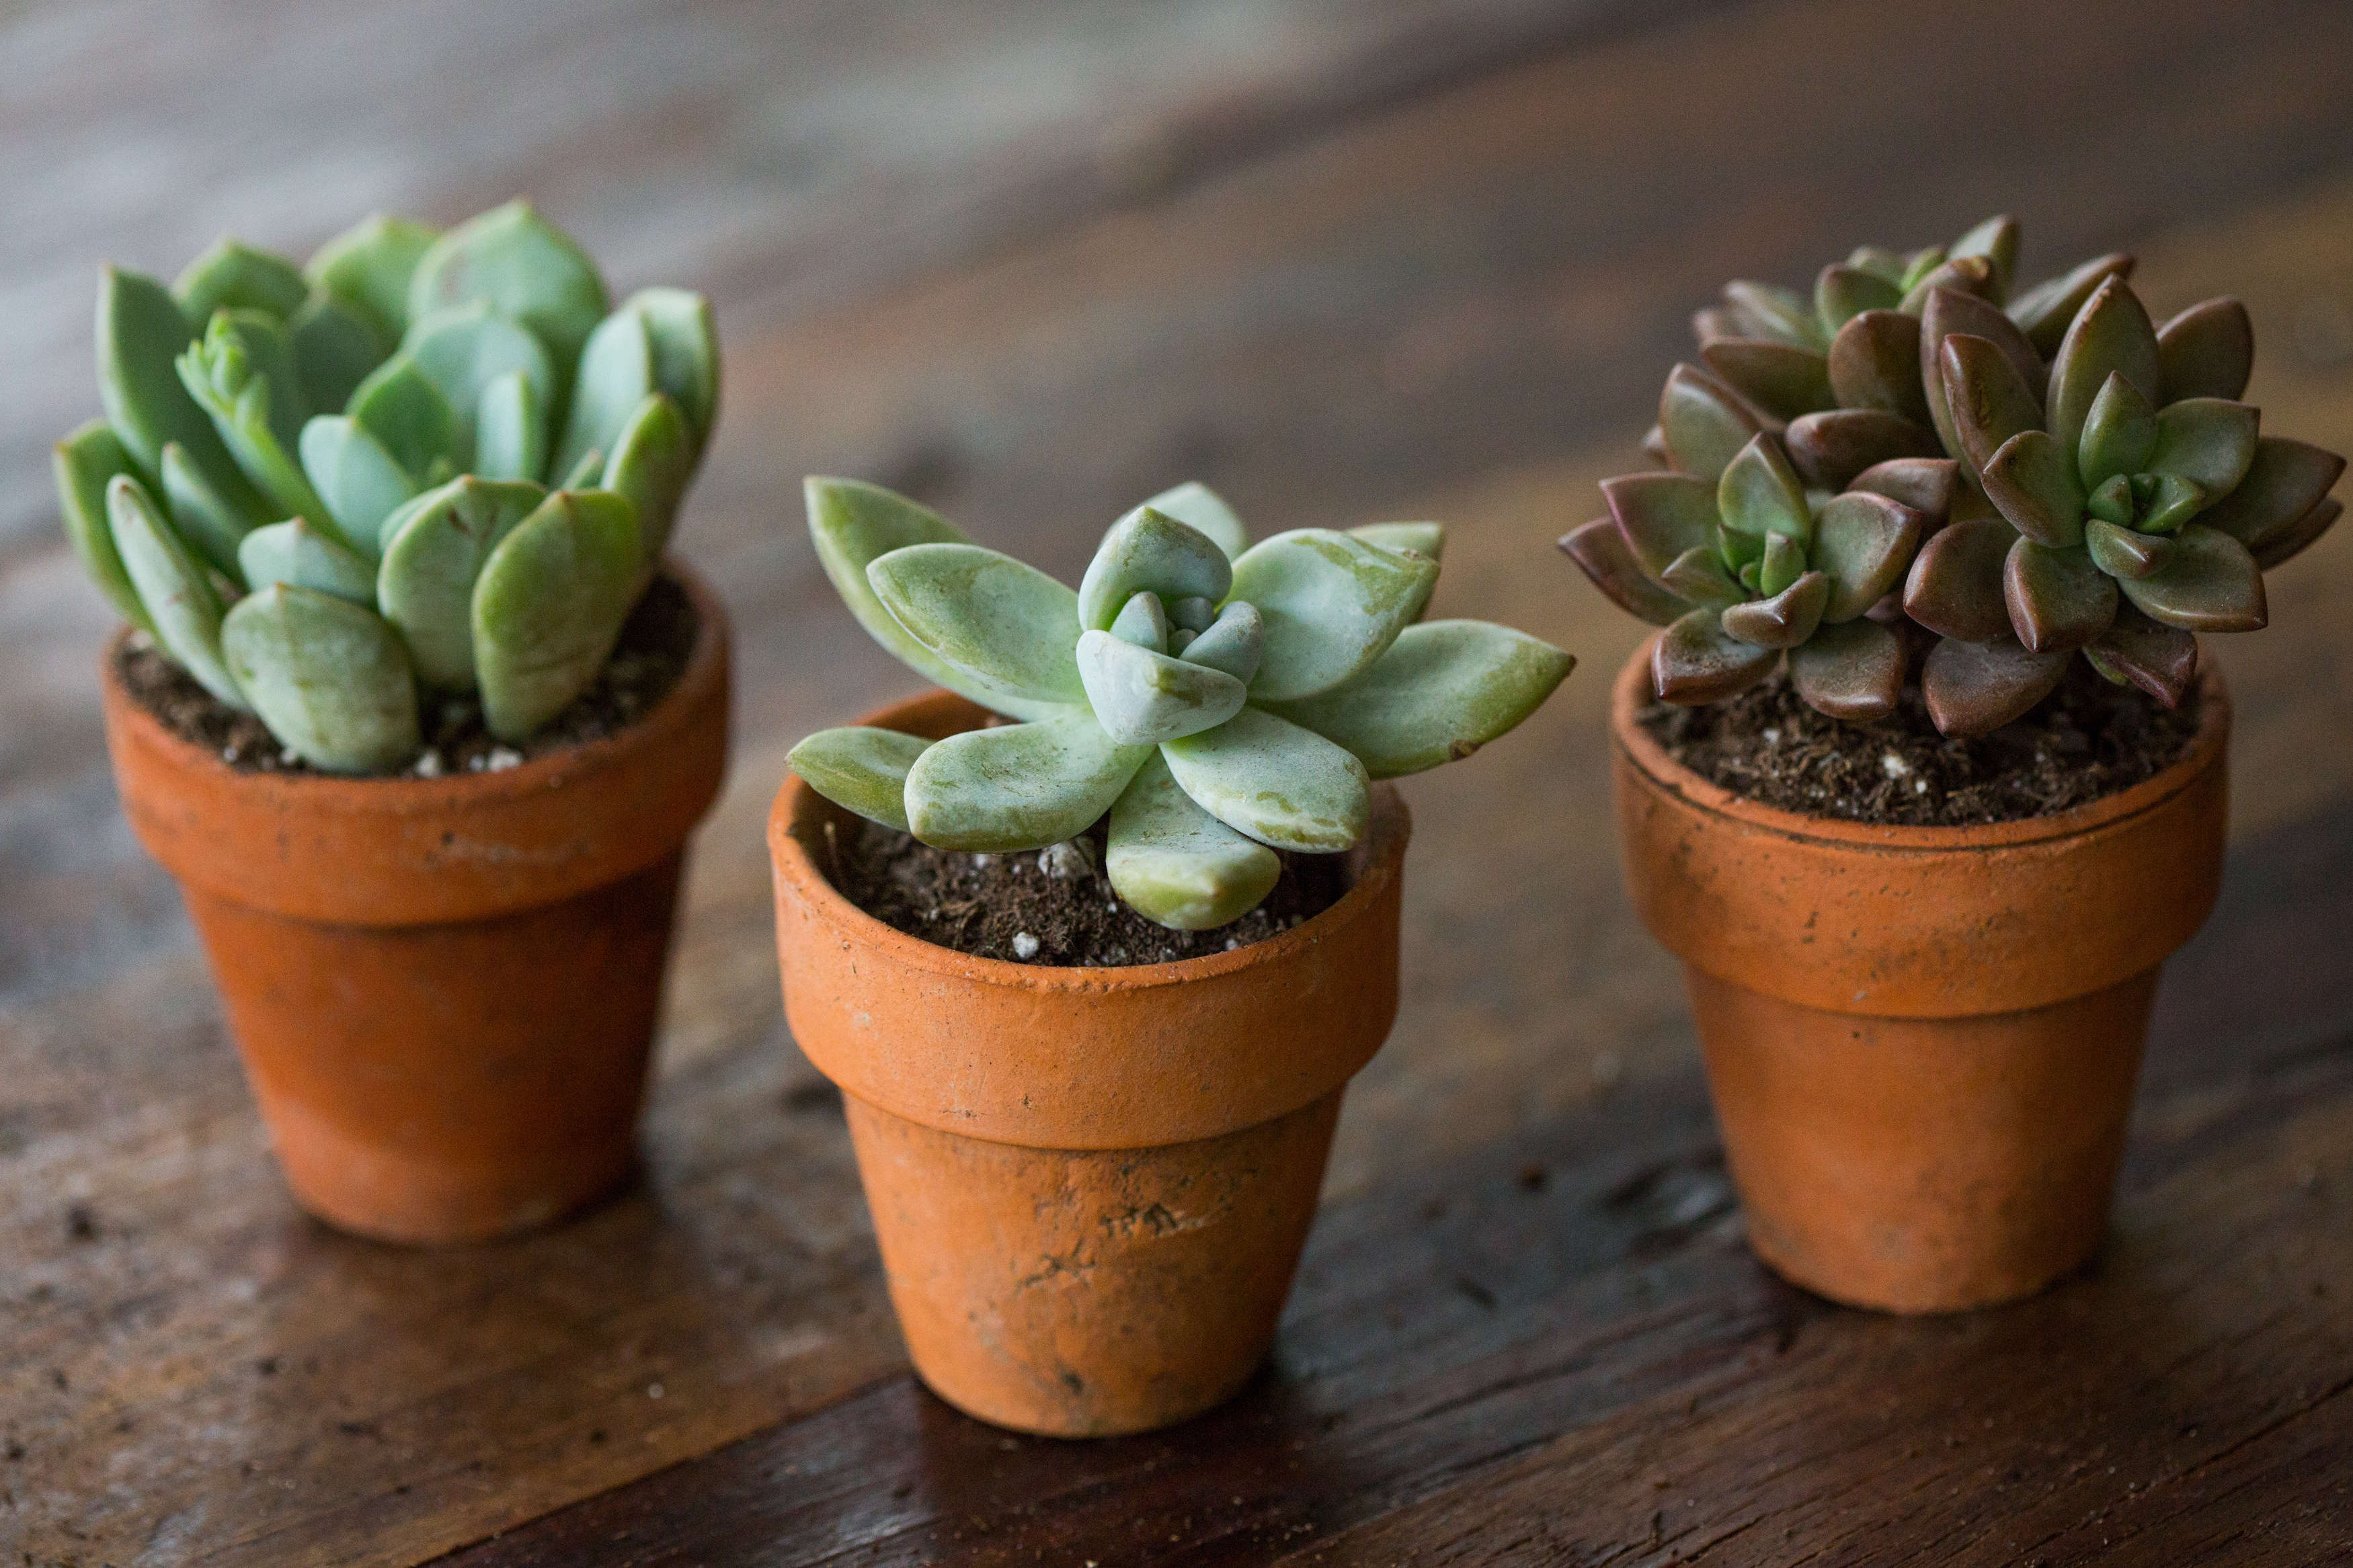 Succulents Explained: How to Identify and Grow Graptos ... on succulent toes, succulent id, succulent pallet wall, succulent varieties, succulent wall decor, succulent wall letters, succulent vines, succulent plants, succulent ivy, succulent living wall, succulent pig, succulent with pink flowers, succulent leaves,